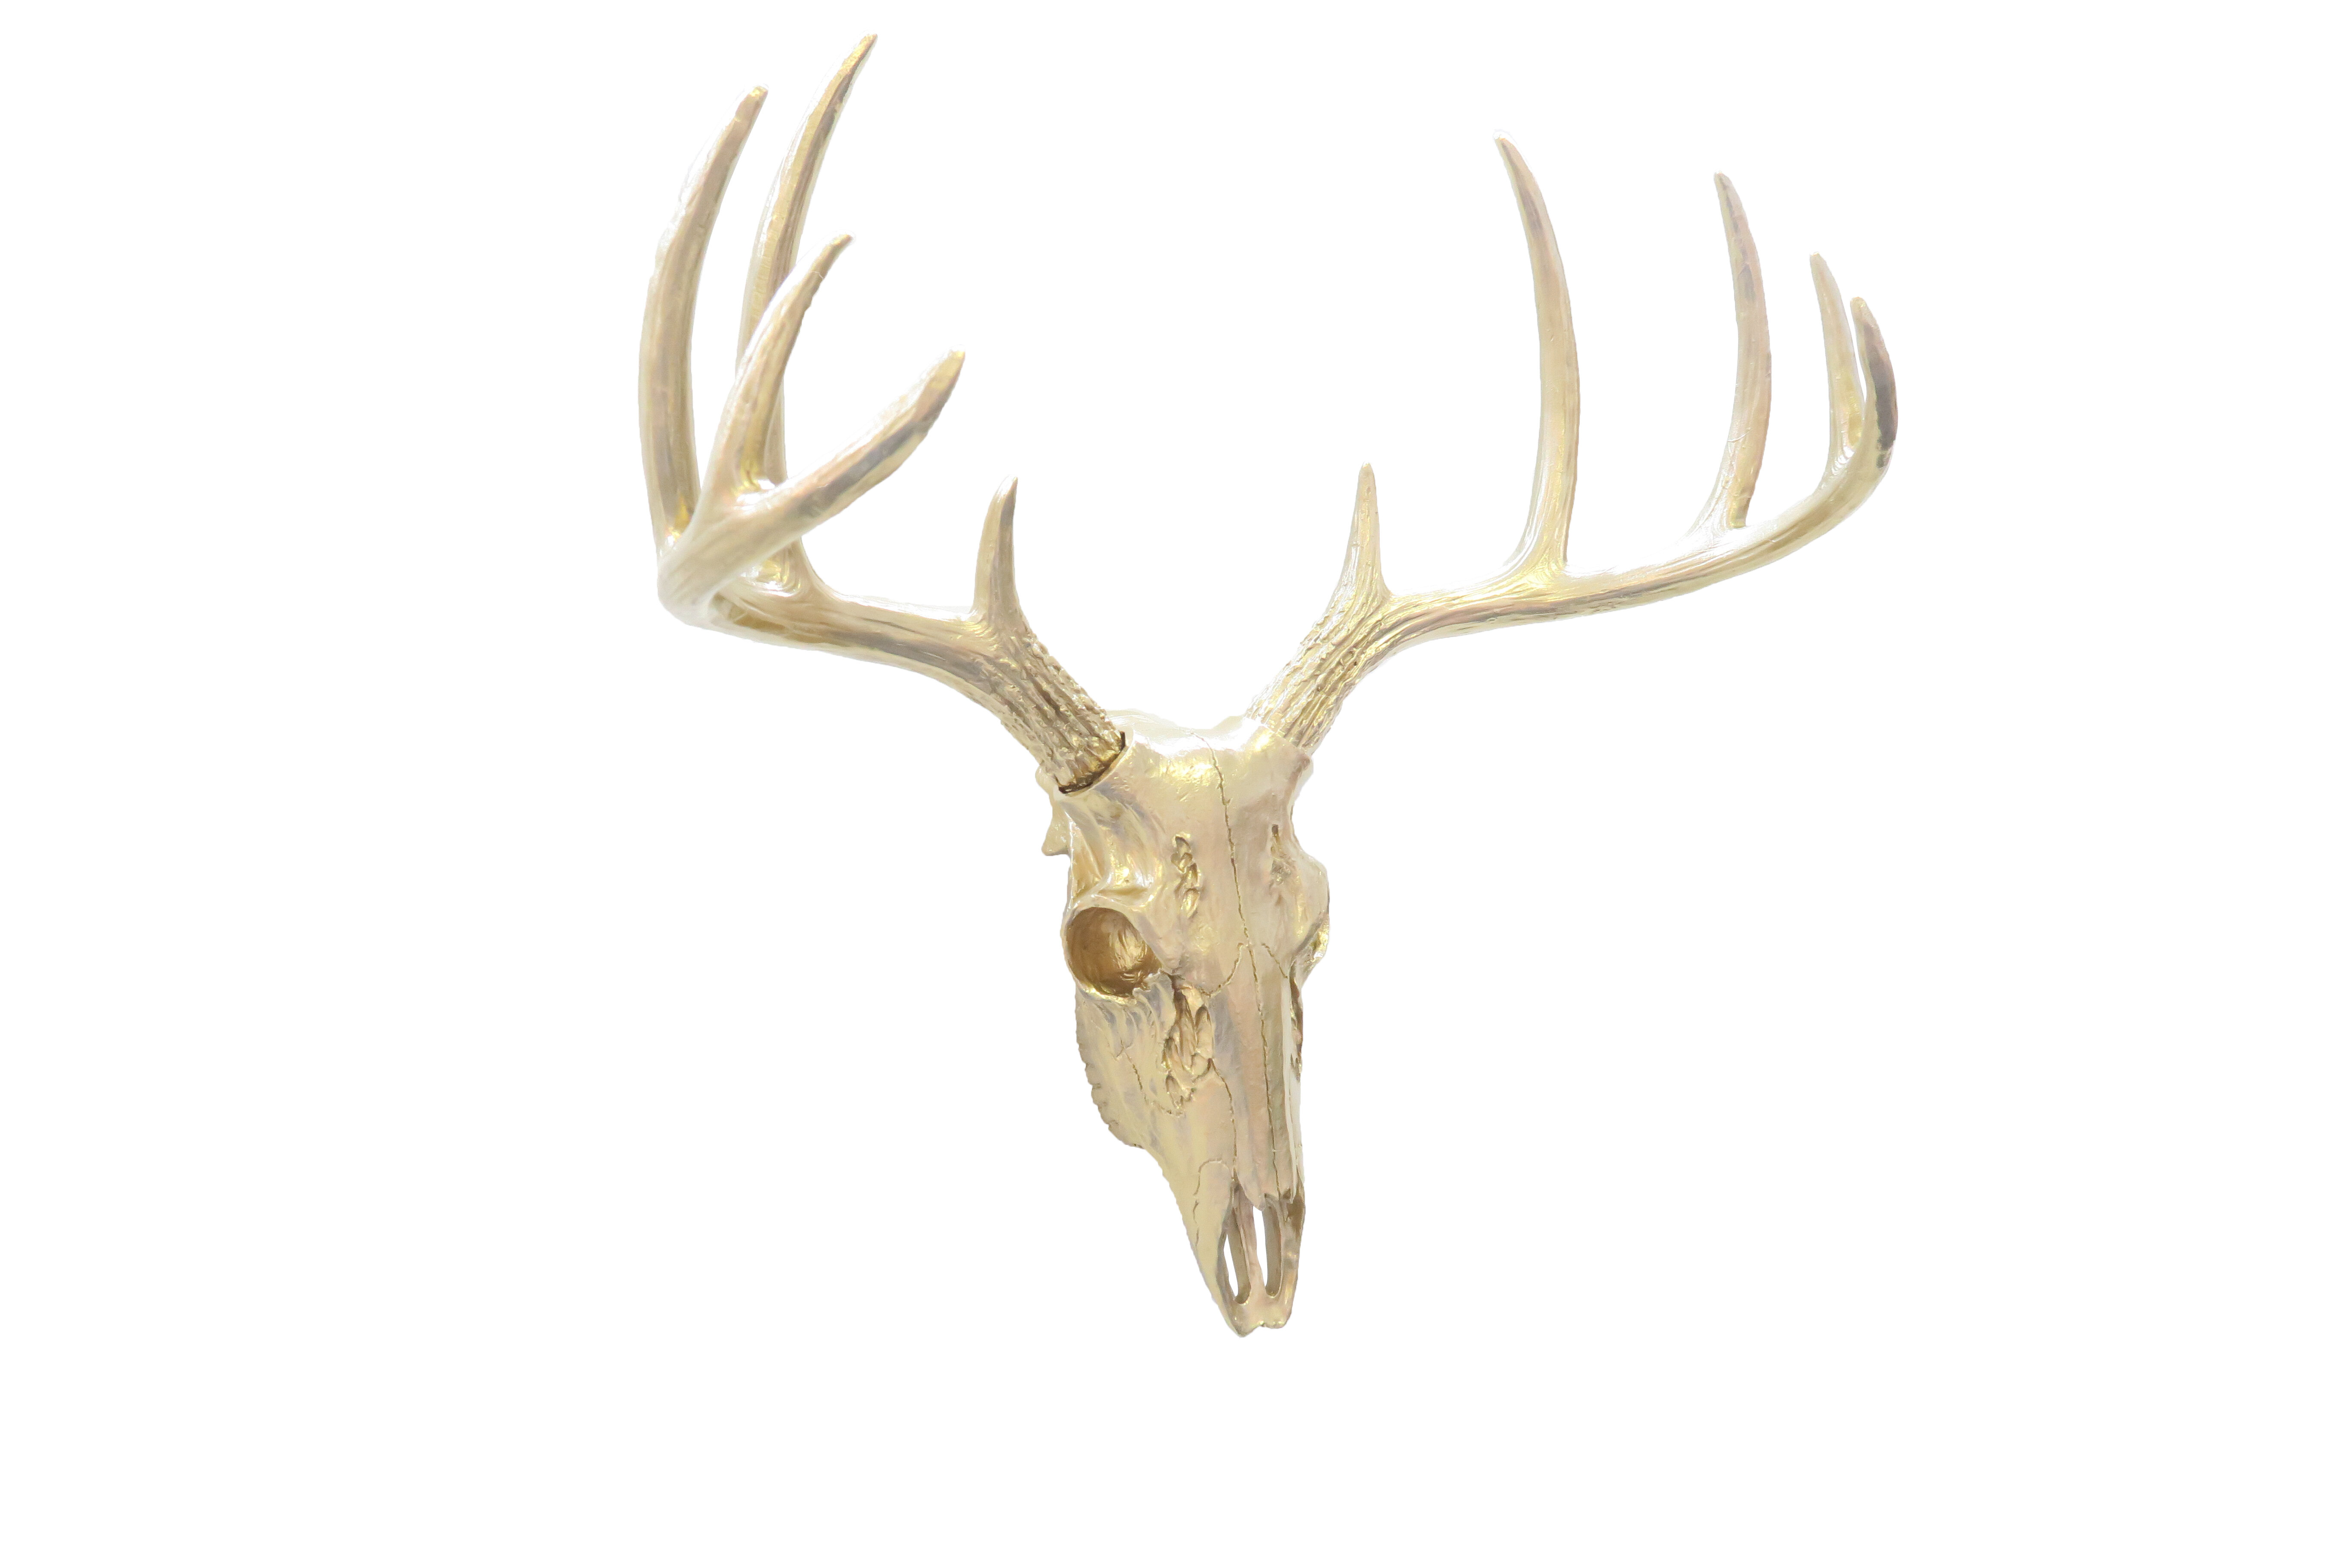 Faux Taxidermy Mini Buck Skull Wall Décor Pertaining To Large Deer Head Faux Taxidermy Wall Decor (View 23 of 30)